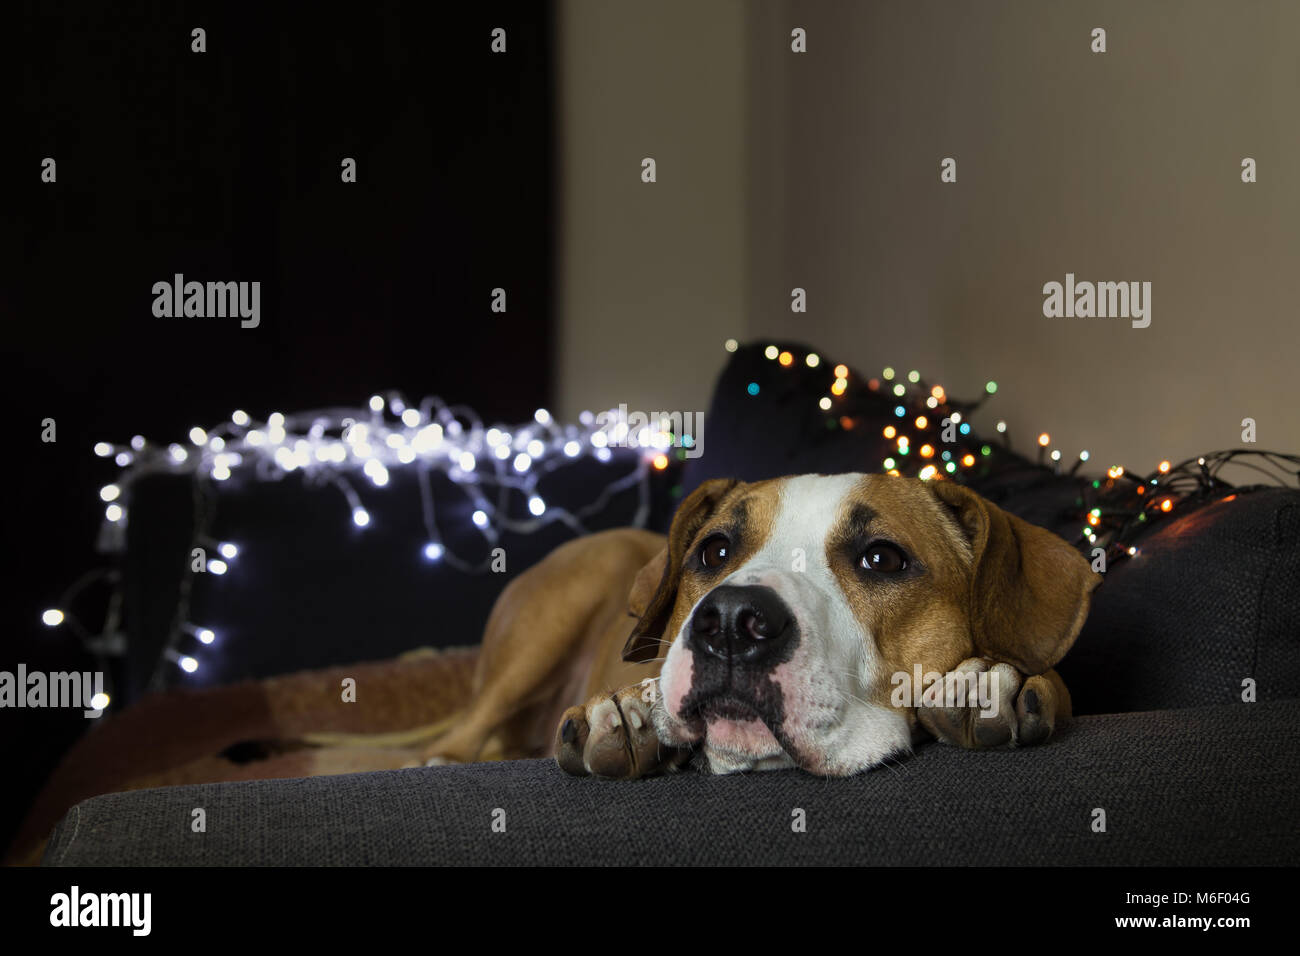 Dog on couch in room with christmas tree set - Stock Image